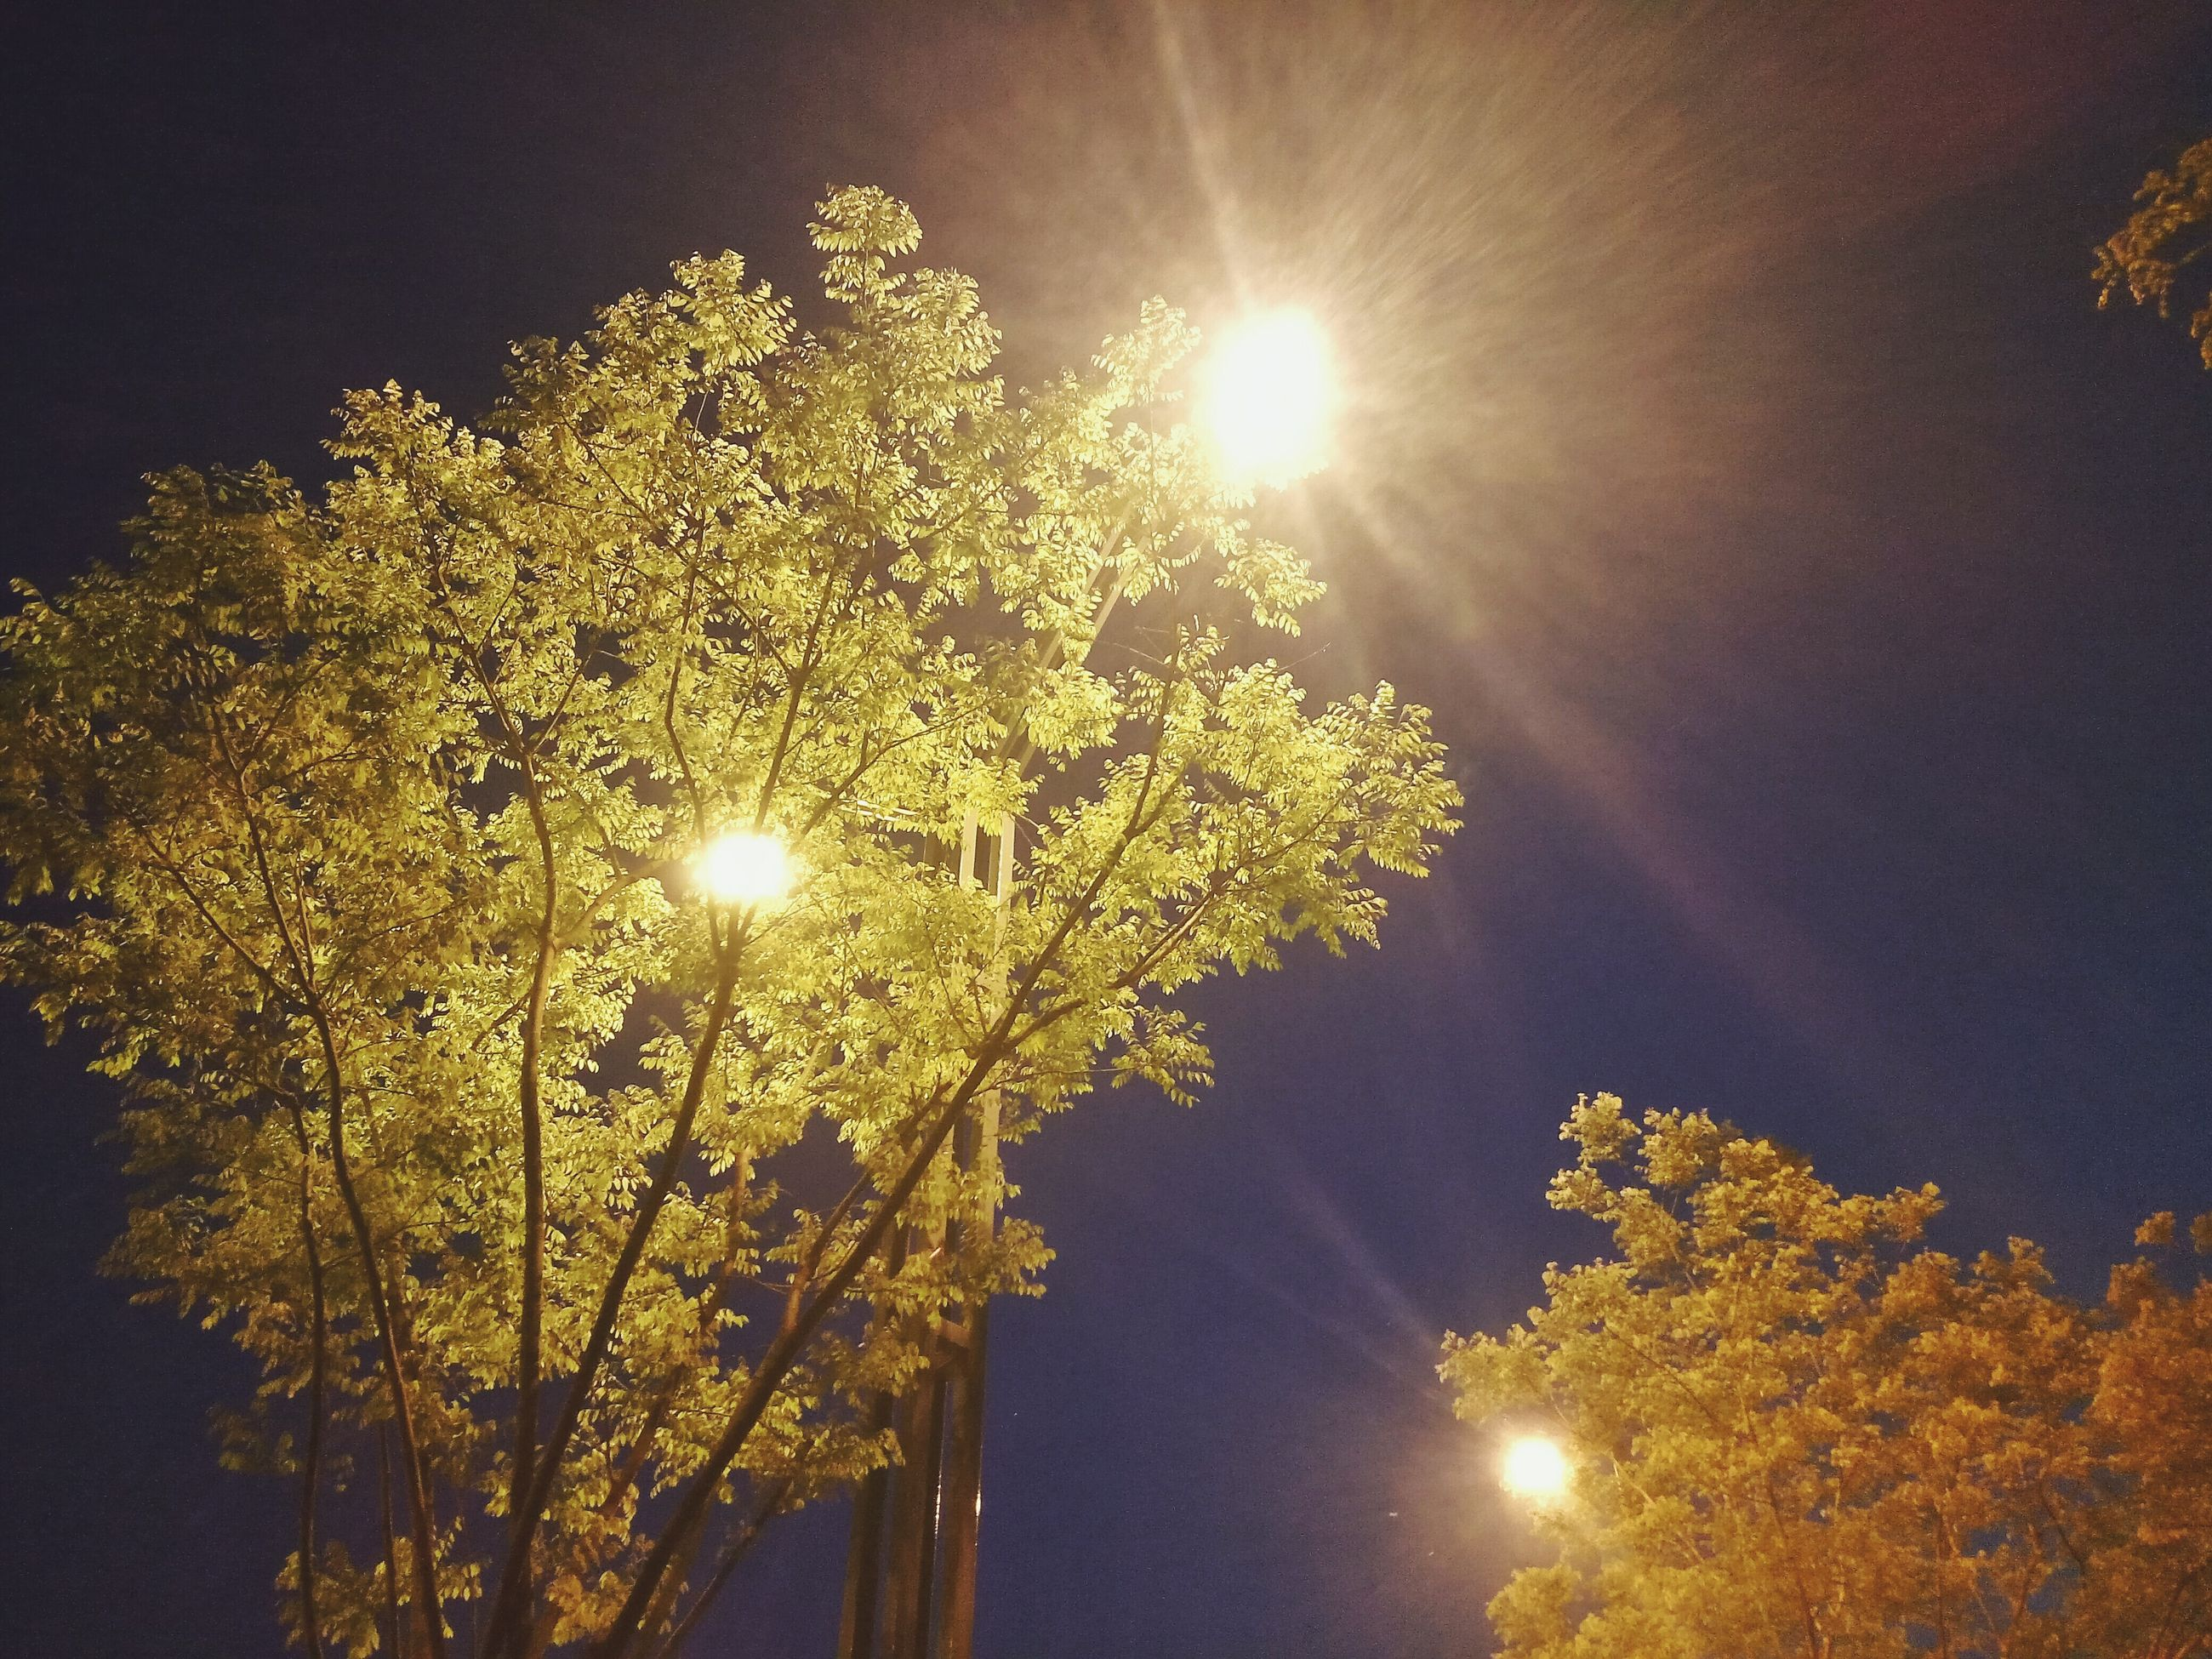 tree, low angle view, sun, illuminated, night, growth, lens flare, branch, nature, street light, lighting equipment, beauty in nature, glowing, sky, sunbeam, sunlight, moon, tranquility, clear sky, outdoors